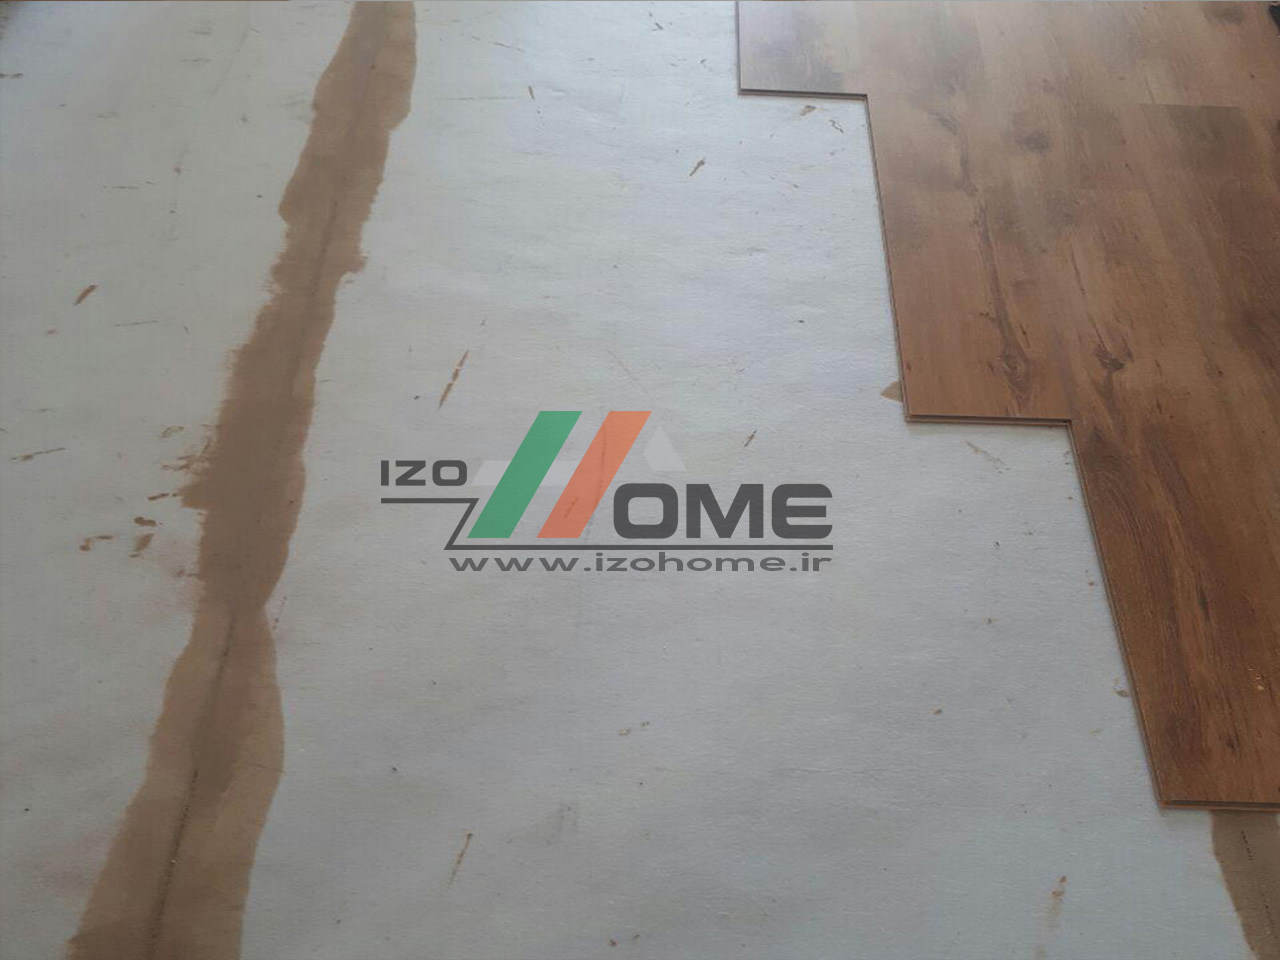 izohome37 - Sound insulation for the floor